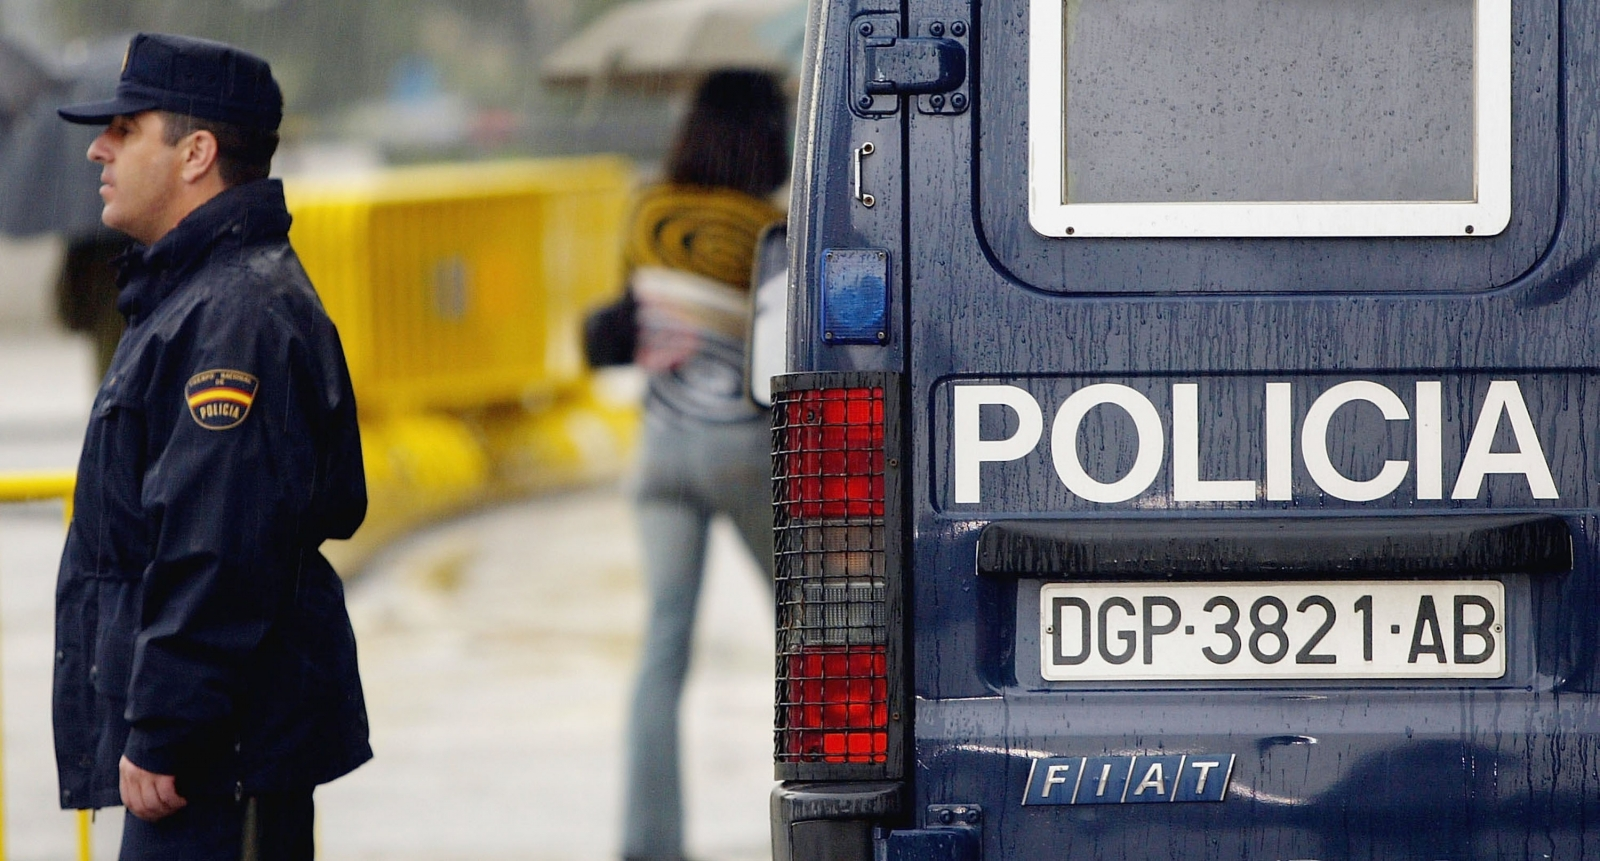 Spanish police arrested five for allegedly tryingto